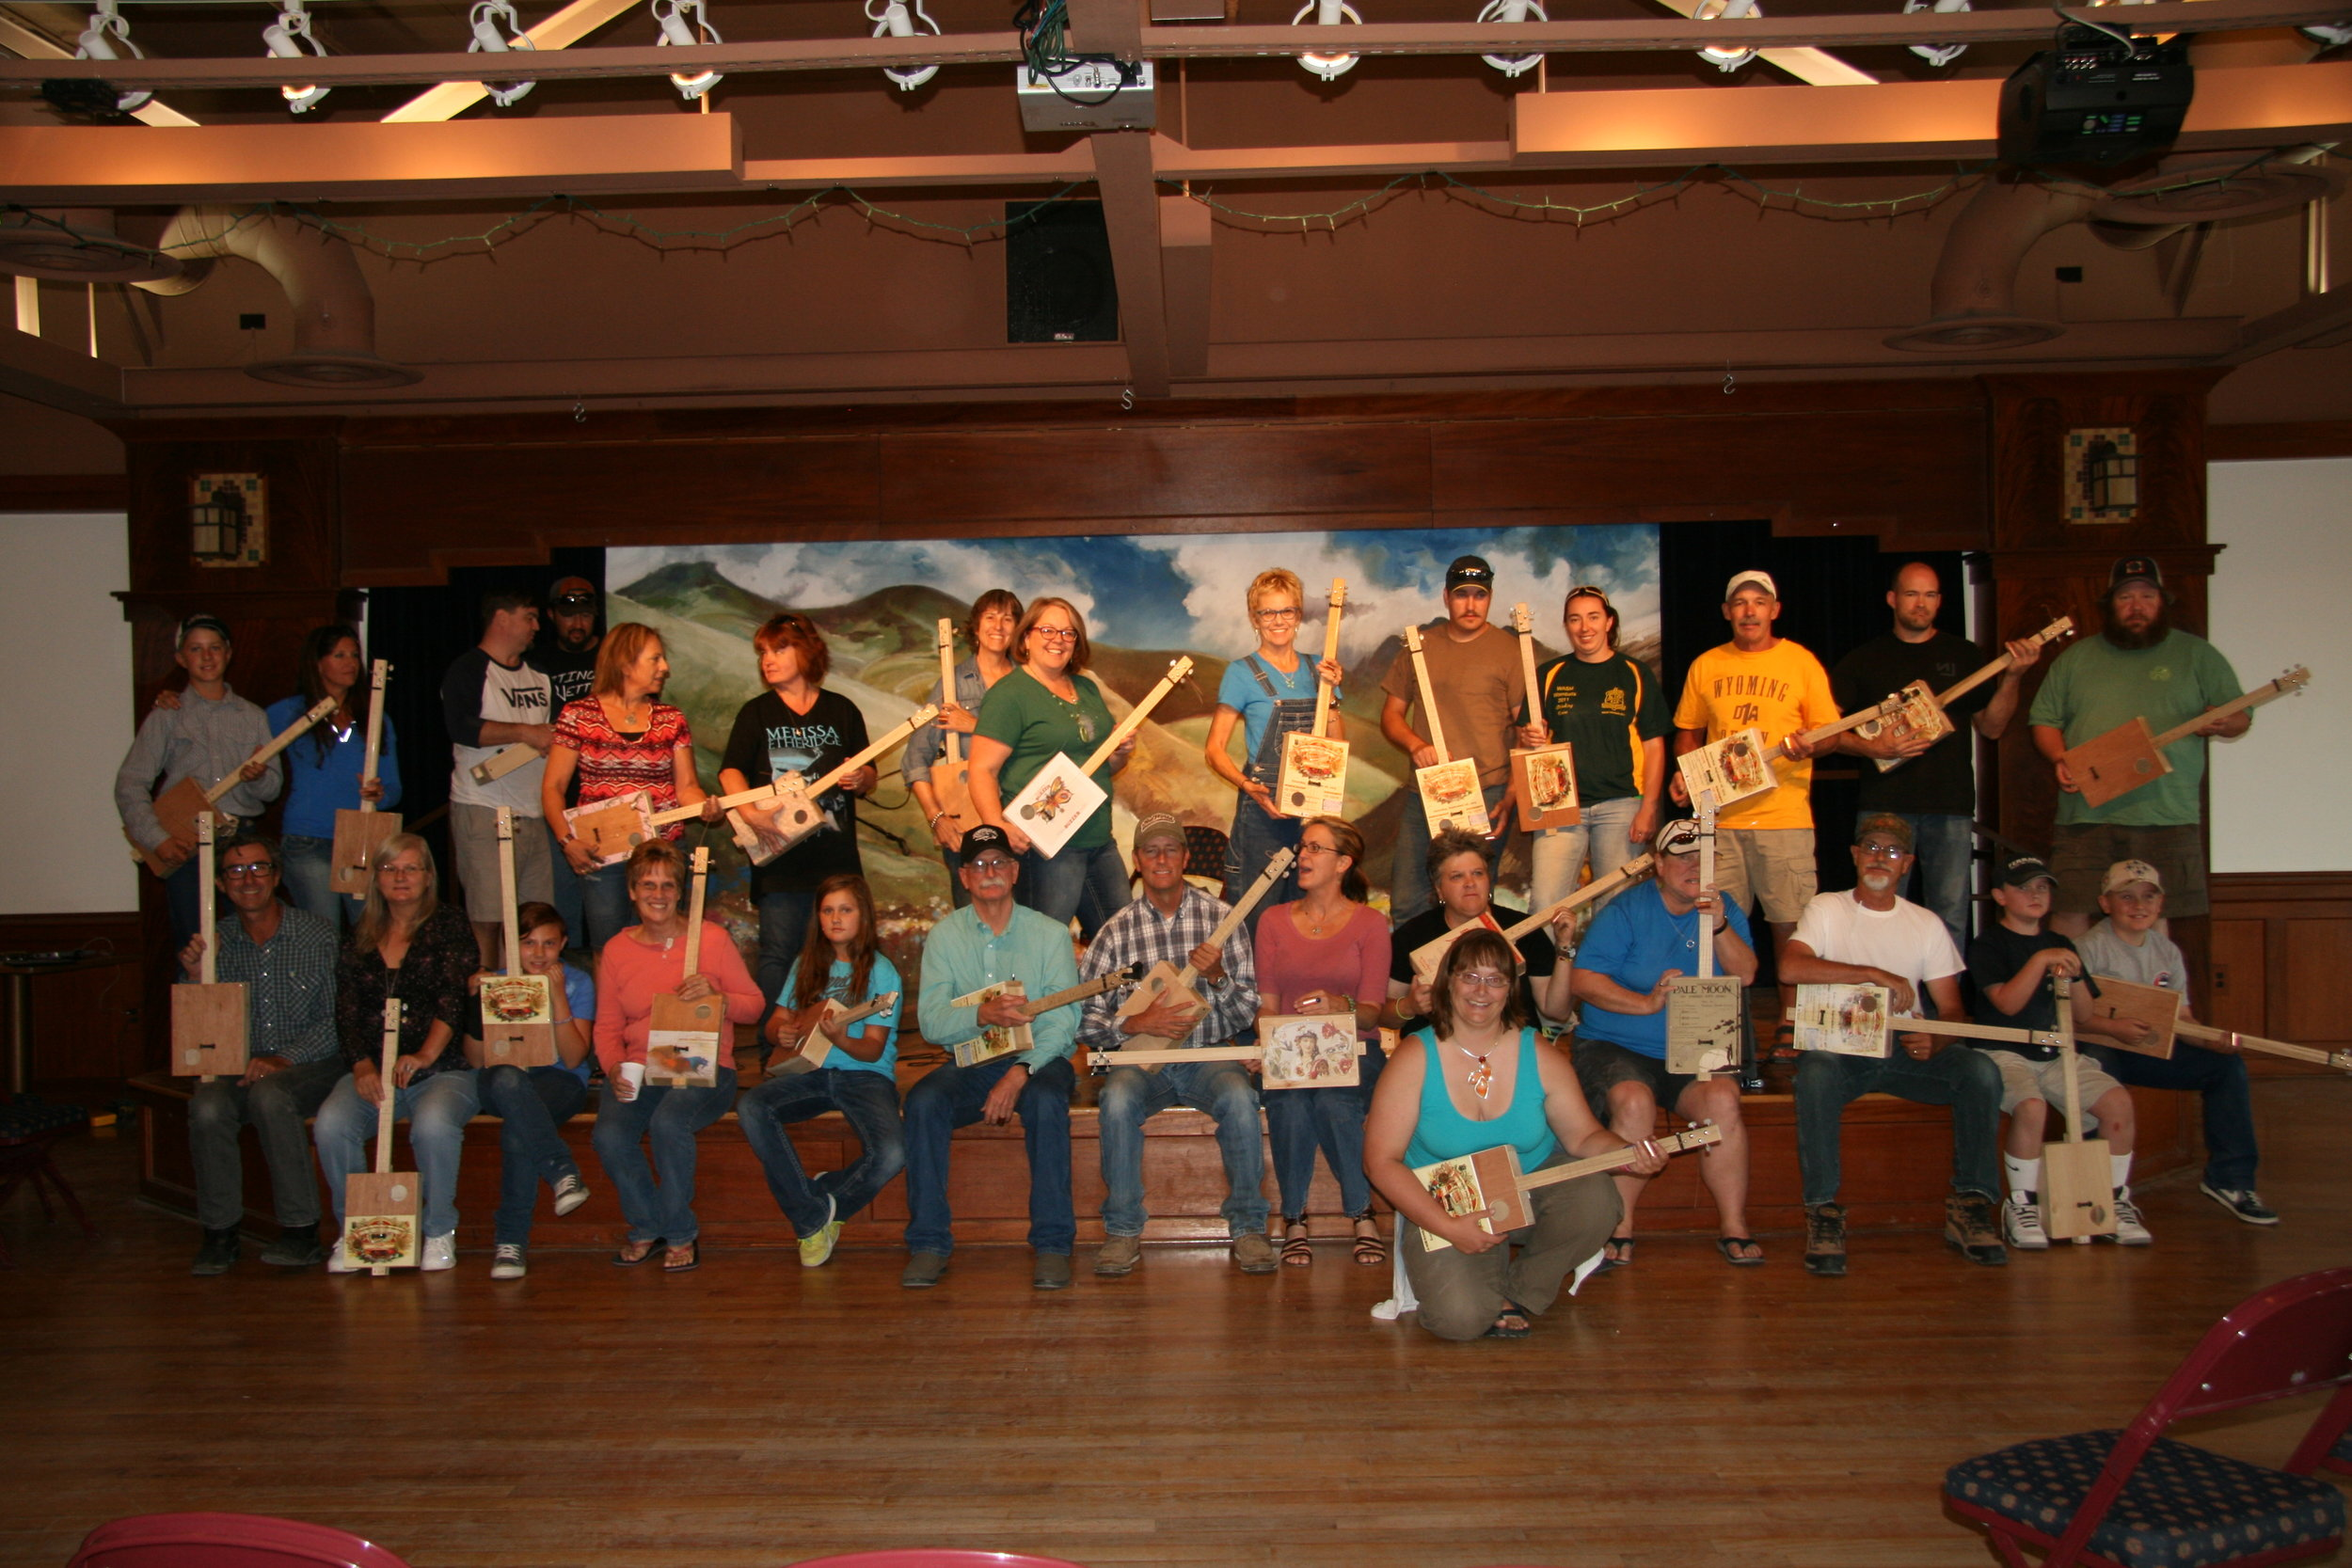 The 2015 Guitar-Box Guitar class at the Western Folklife Center